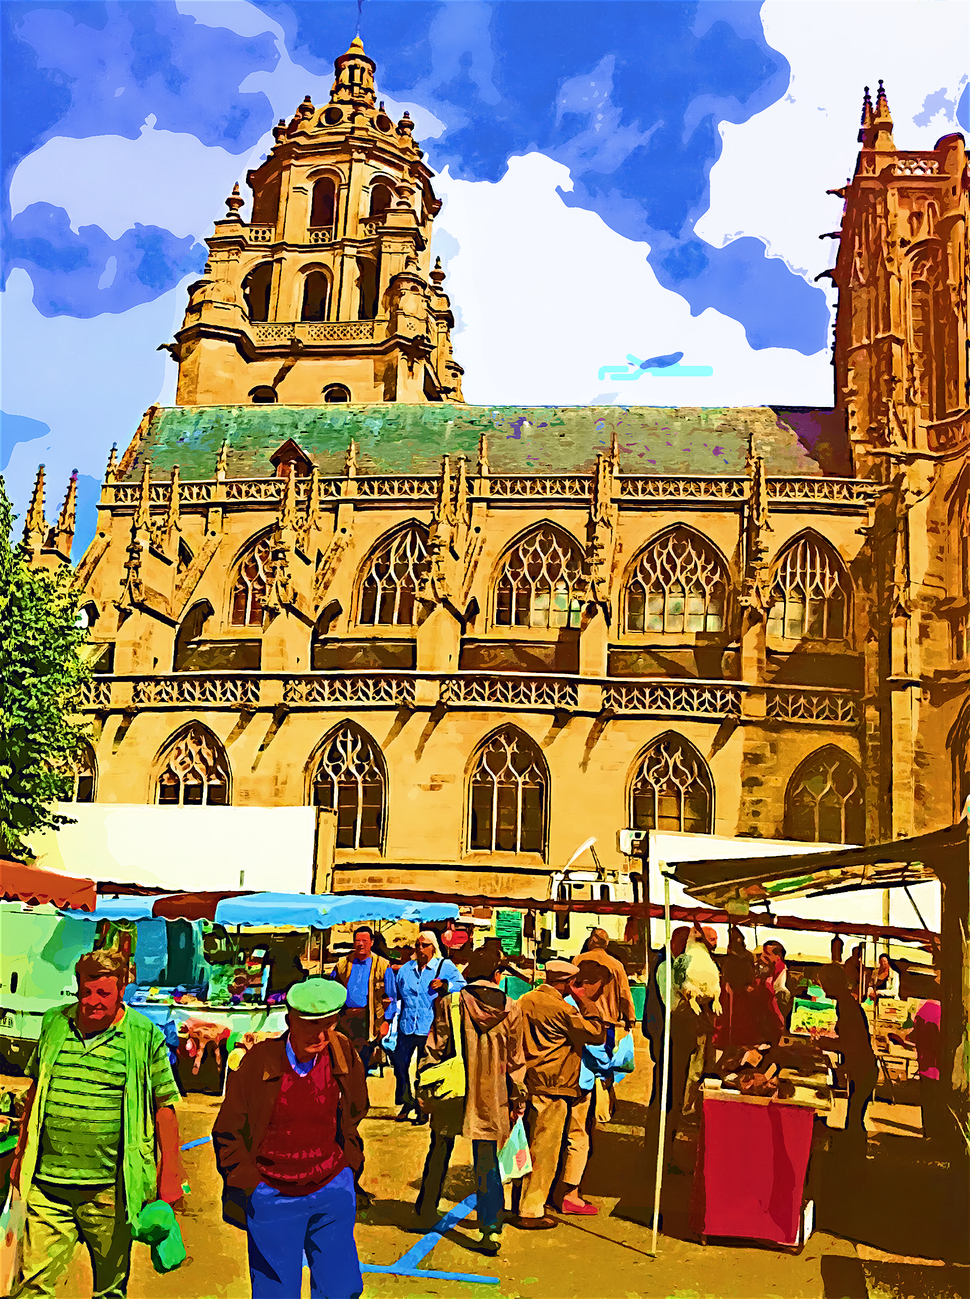 St Germain church and weekly market